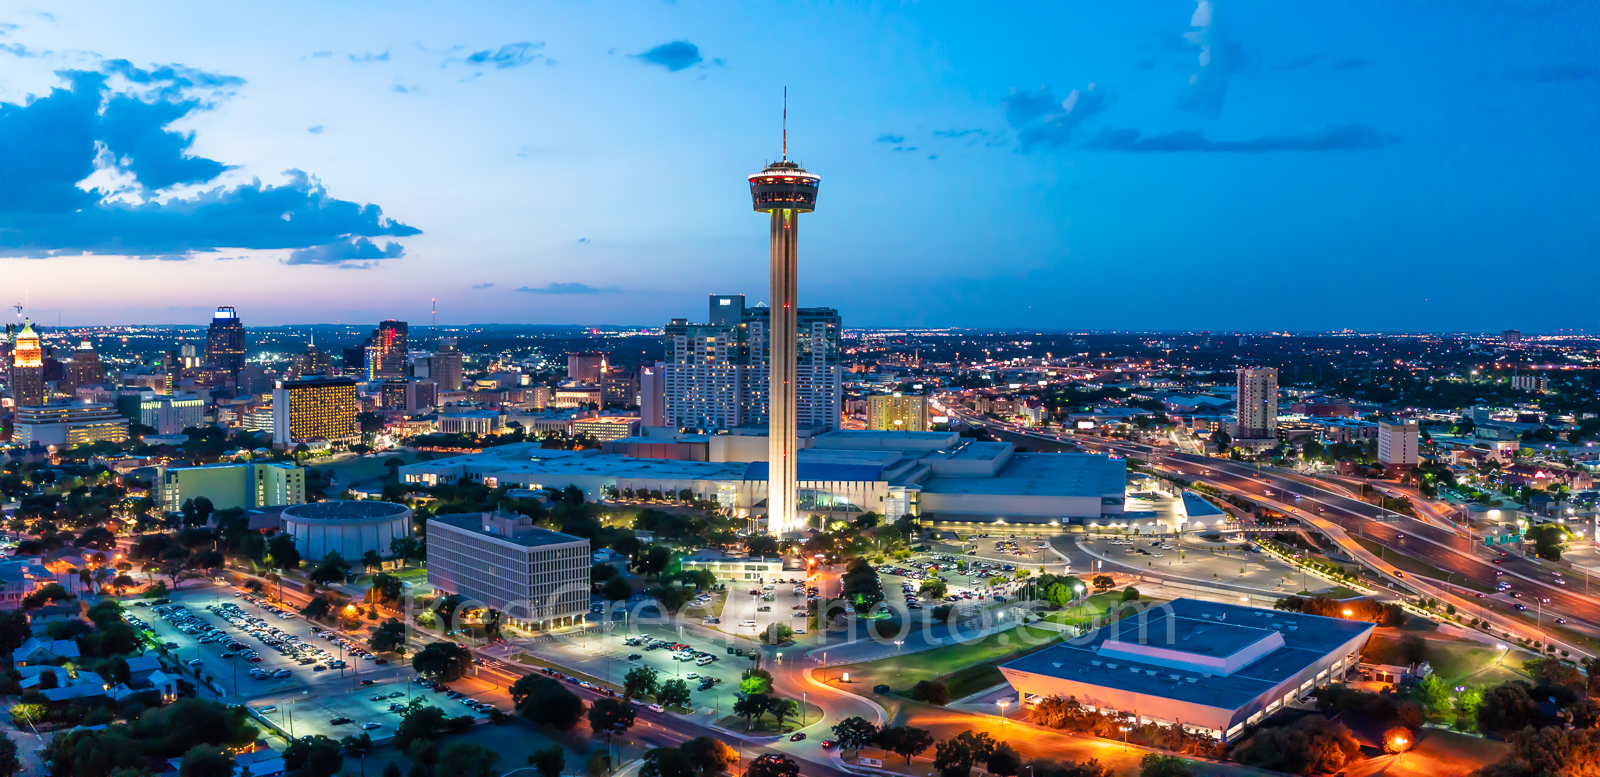 San Antonio skyline, cityscape, dusk, aerial, Tower of America,Downtown San Antonio at Twilight, Tower Life, building, Drury Hotel, Grand Hyatt, George Gonzales, convention center, historic site, city, photo